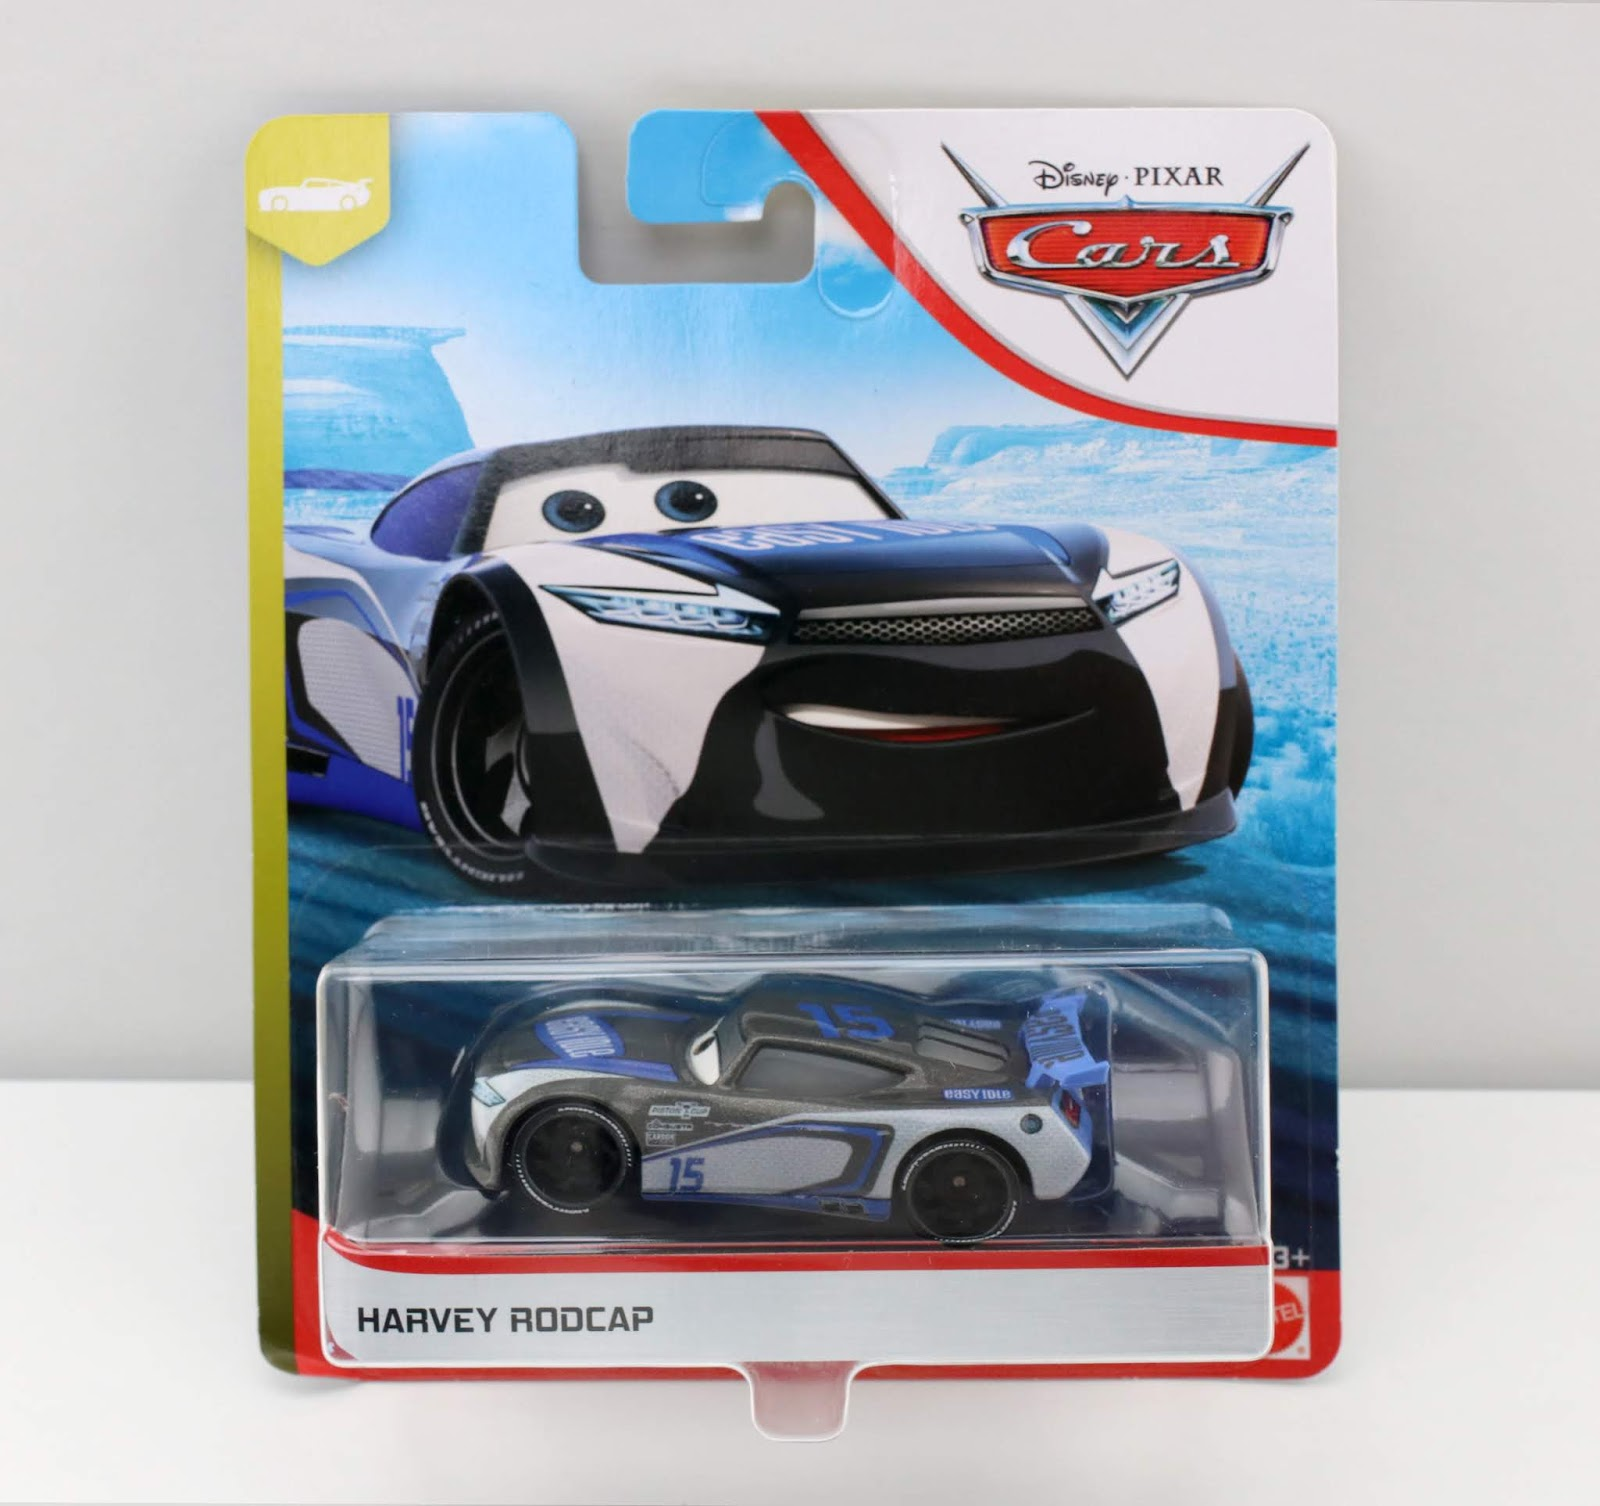 Cars 3 Harvey Rodcap diecast review